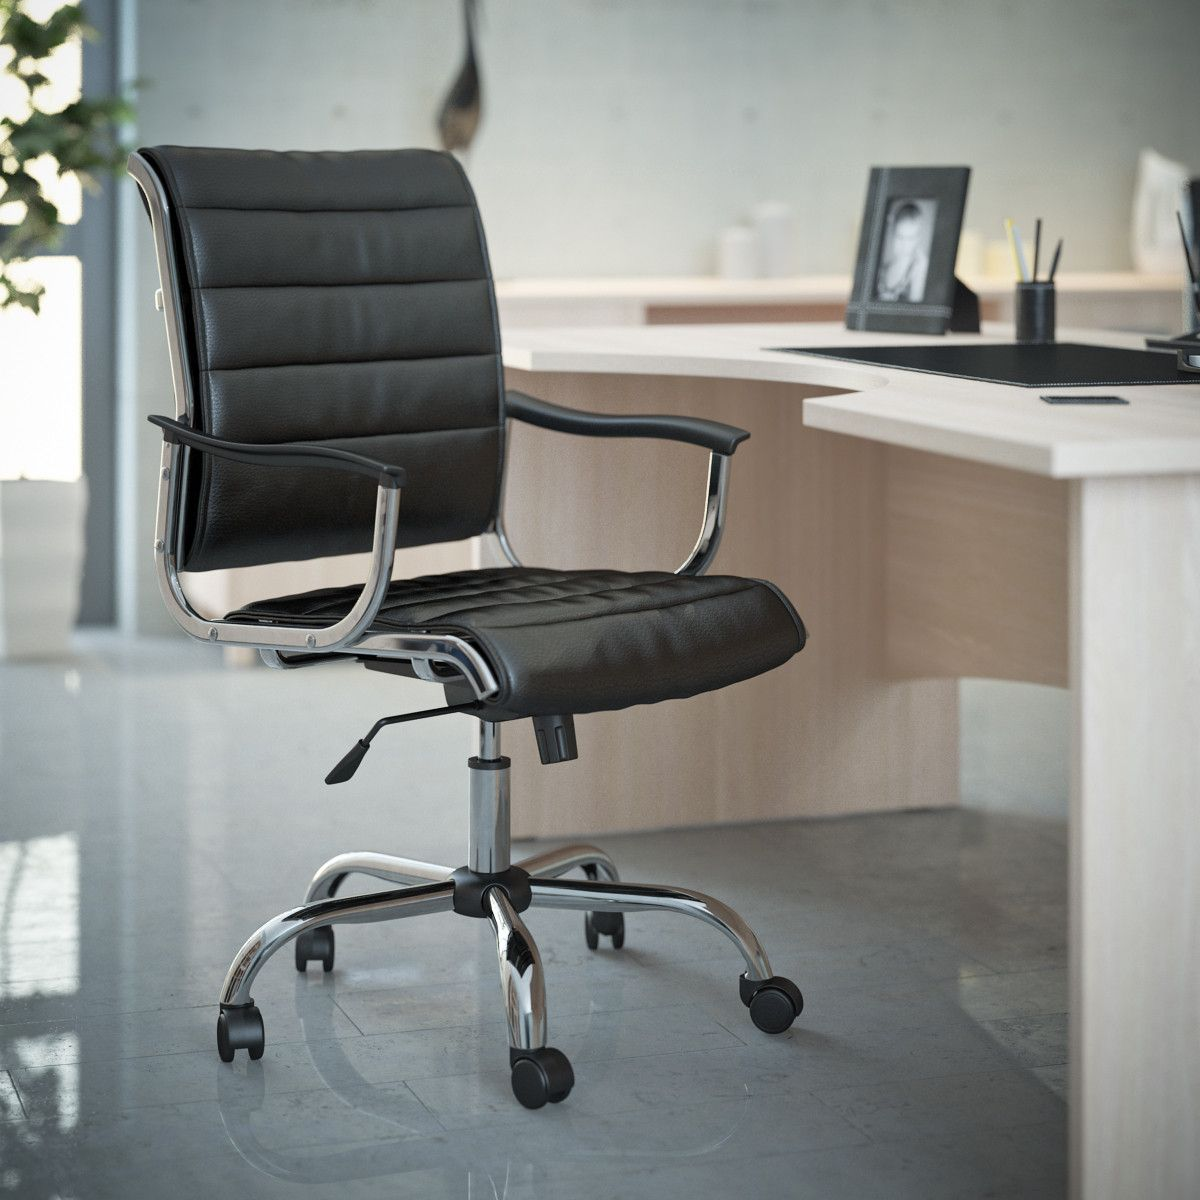 Office Chair 994axns 3d Model 3ds Max Vray Makula 39 S 3d